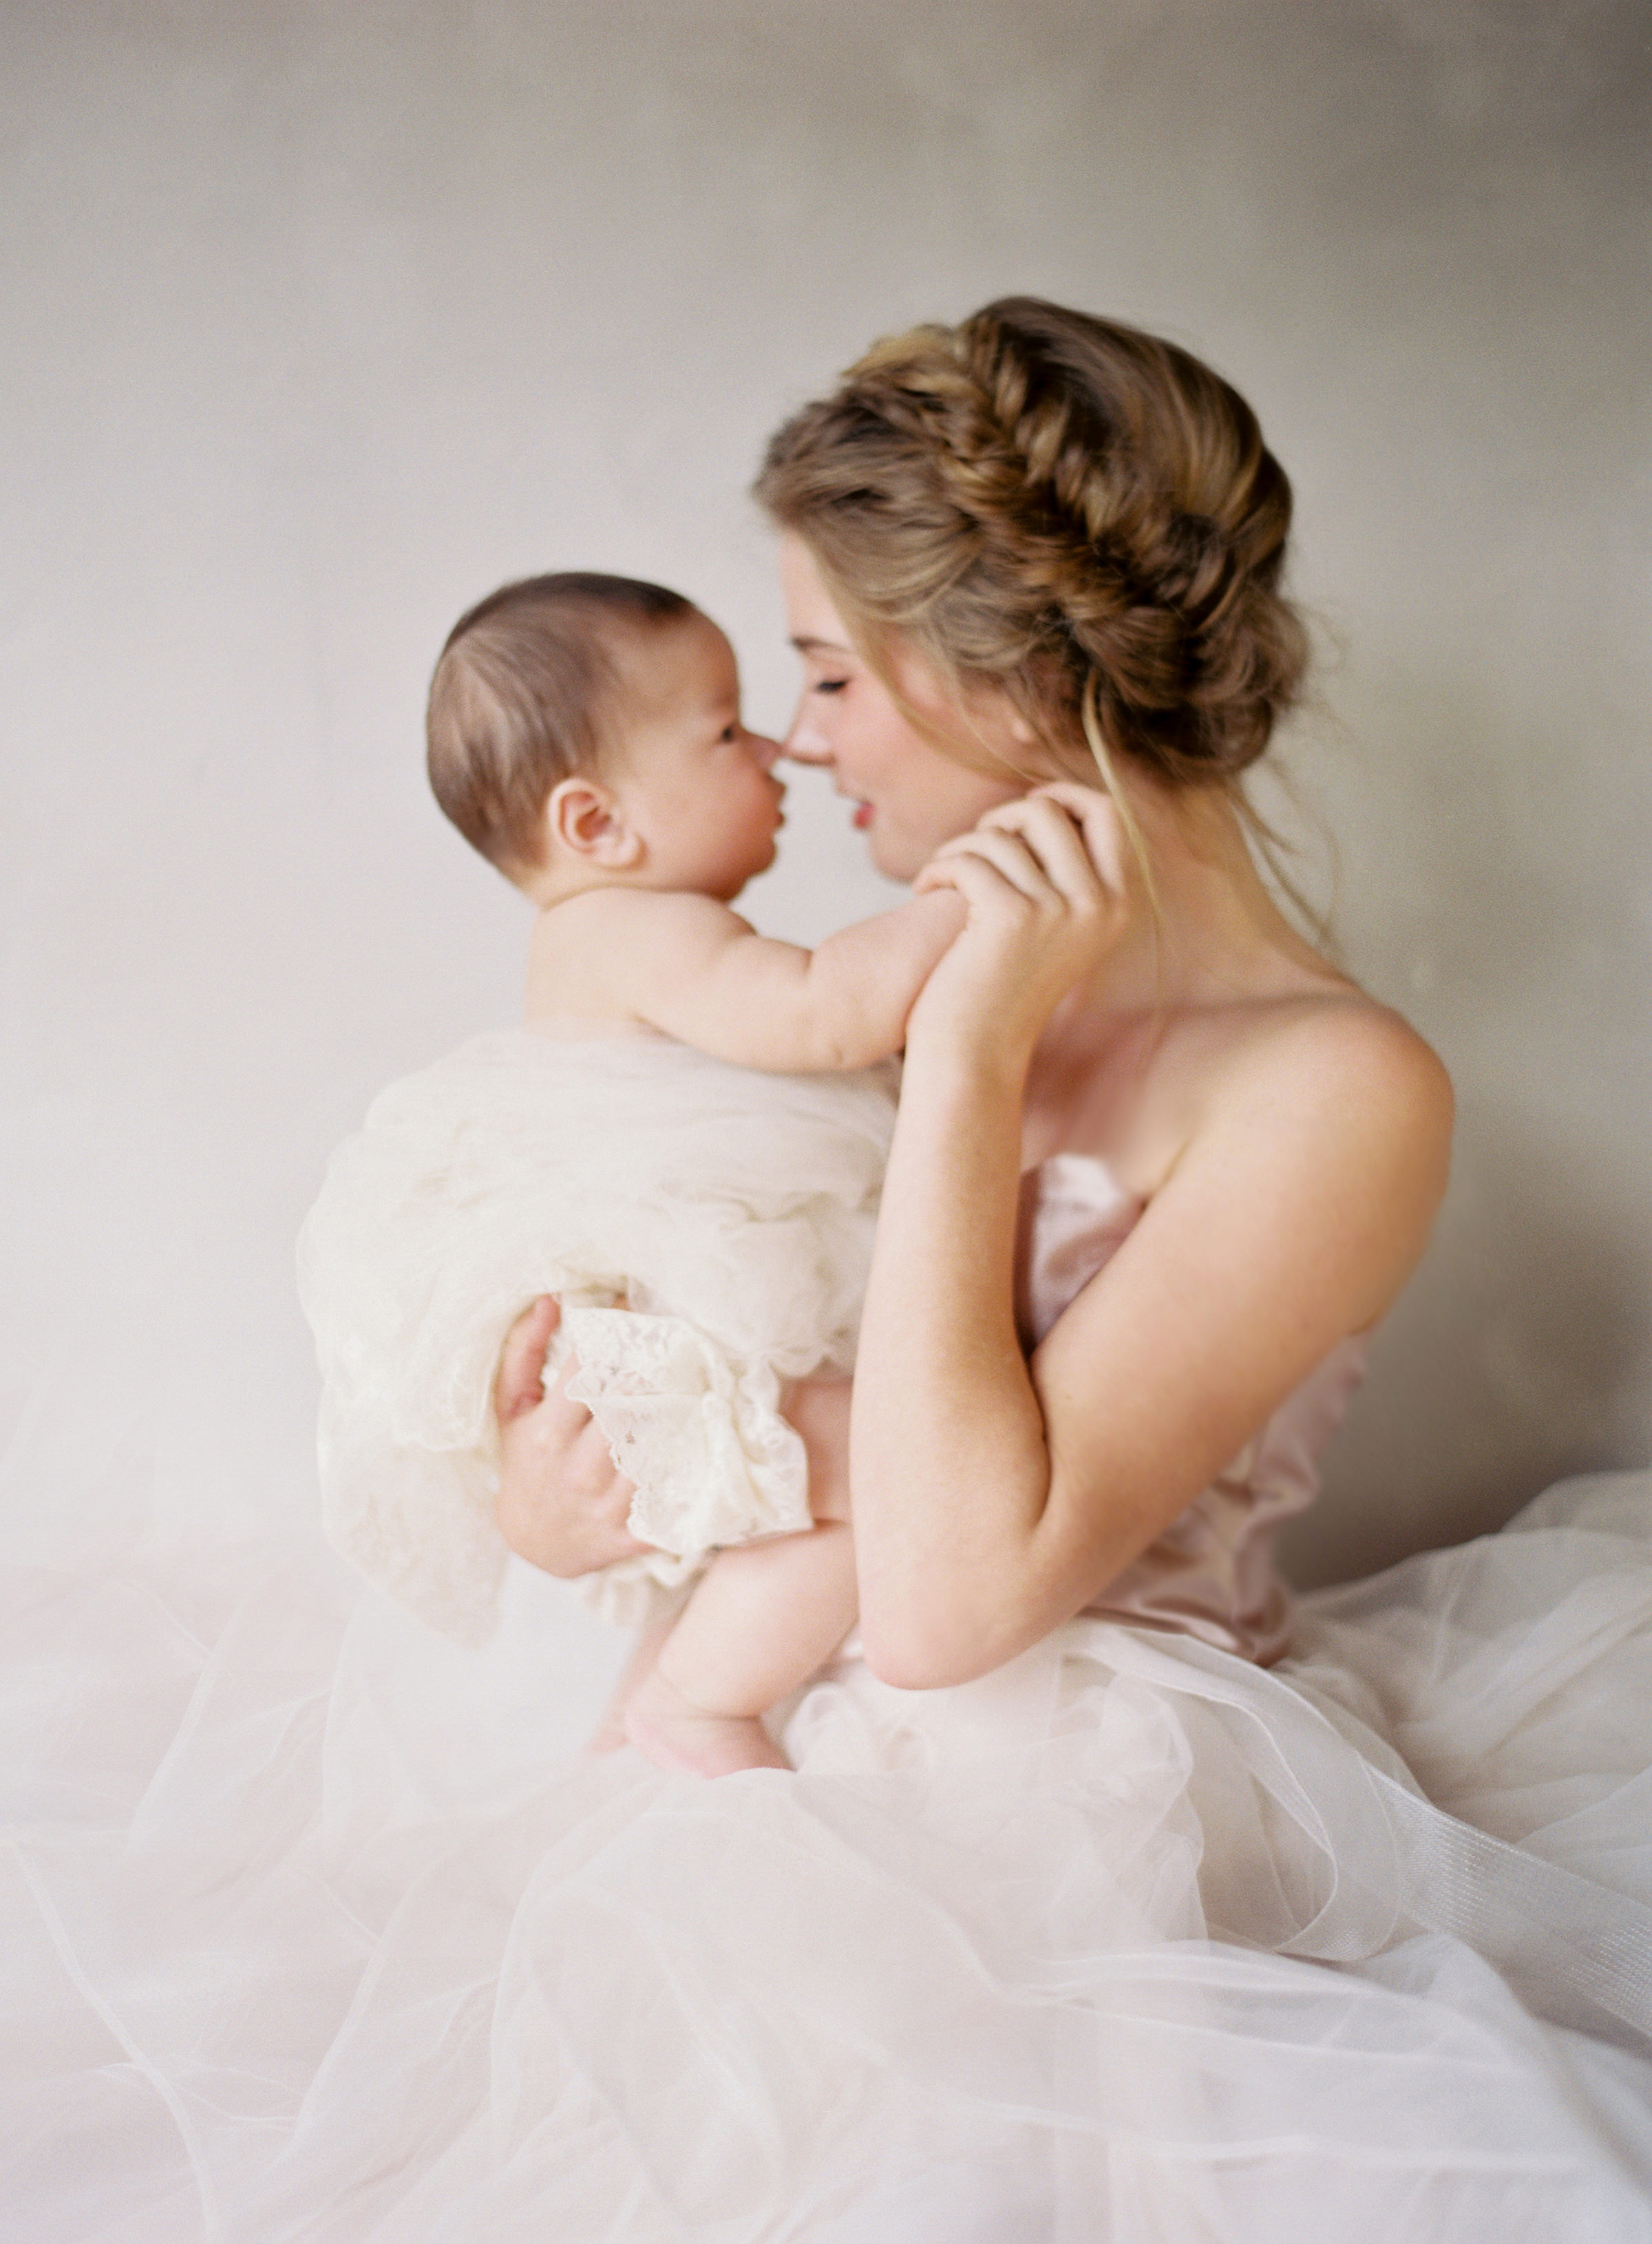 Bride in profile holding baby - photo by Jen Huang